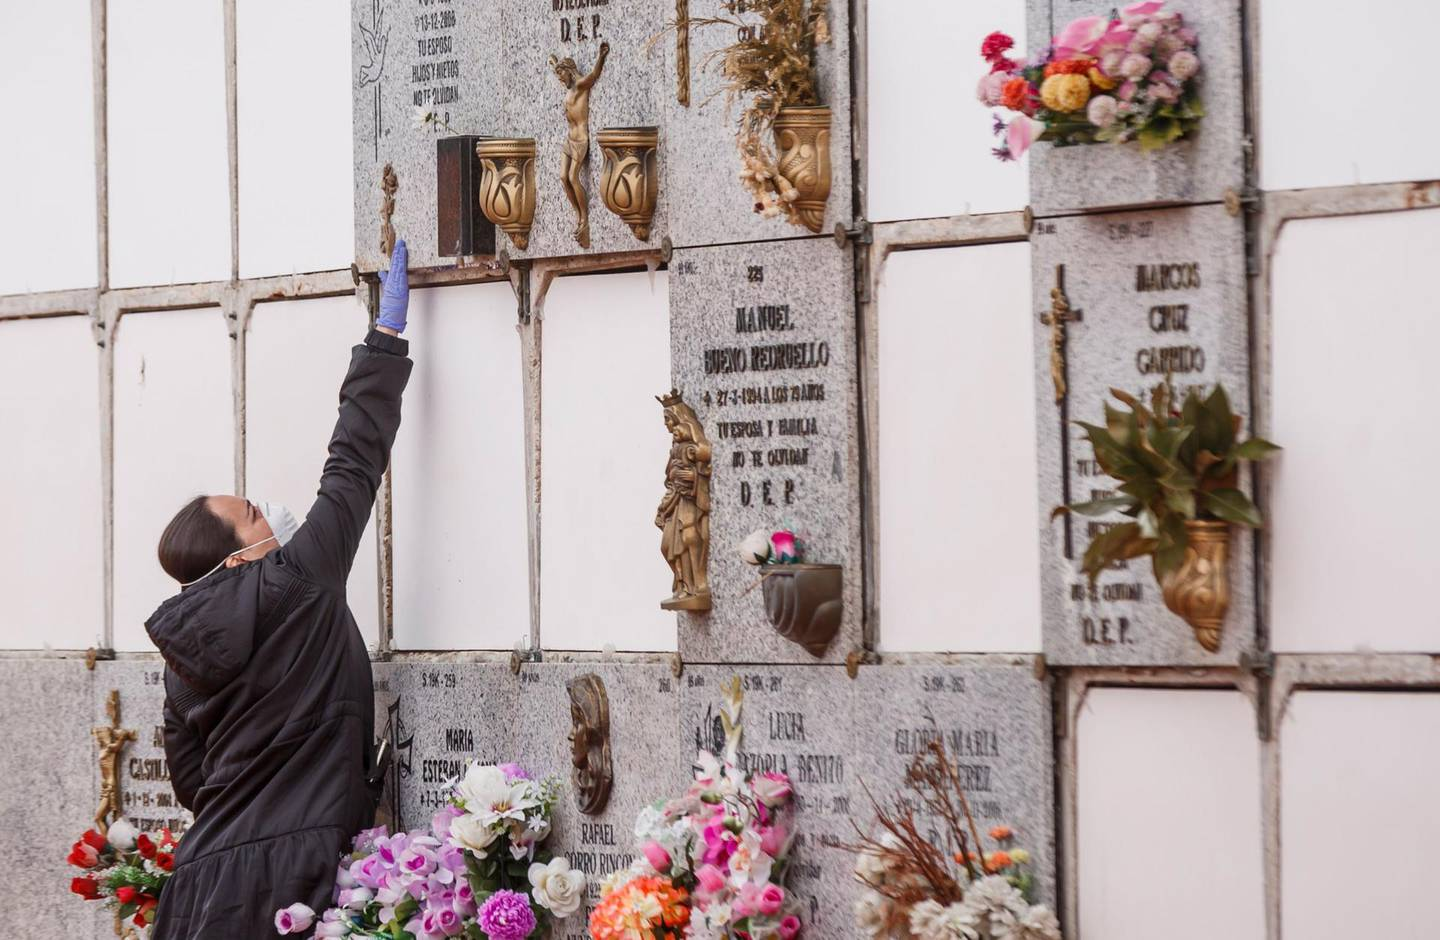 A woman wearing a face mask and gloves touches a niche during the burial of a man who died of the new coronavirus at the South Municipal cemetery in Madrid, on March 23, 2020. The coronavirus death toll in Spain surged to 2,182 after 462 people died within 24 hours, the health ministry said. The death rate showed a 27-percent increase on the figures released a day earlier, with the number of confirmed cases of COVID-19 rising to 33,089 in Spain, one of the worst-hit countries in the world after China and Italy.  / AFP / BALDESCA SAMPER